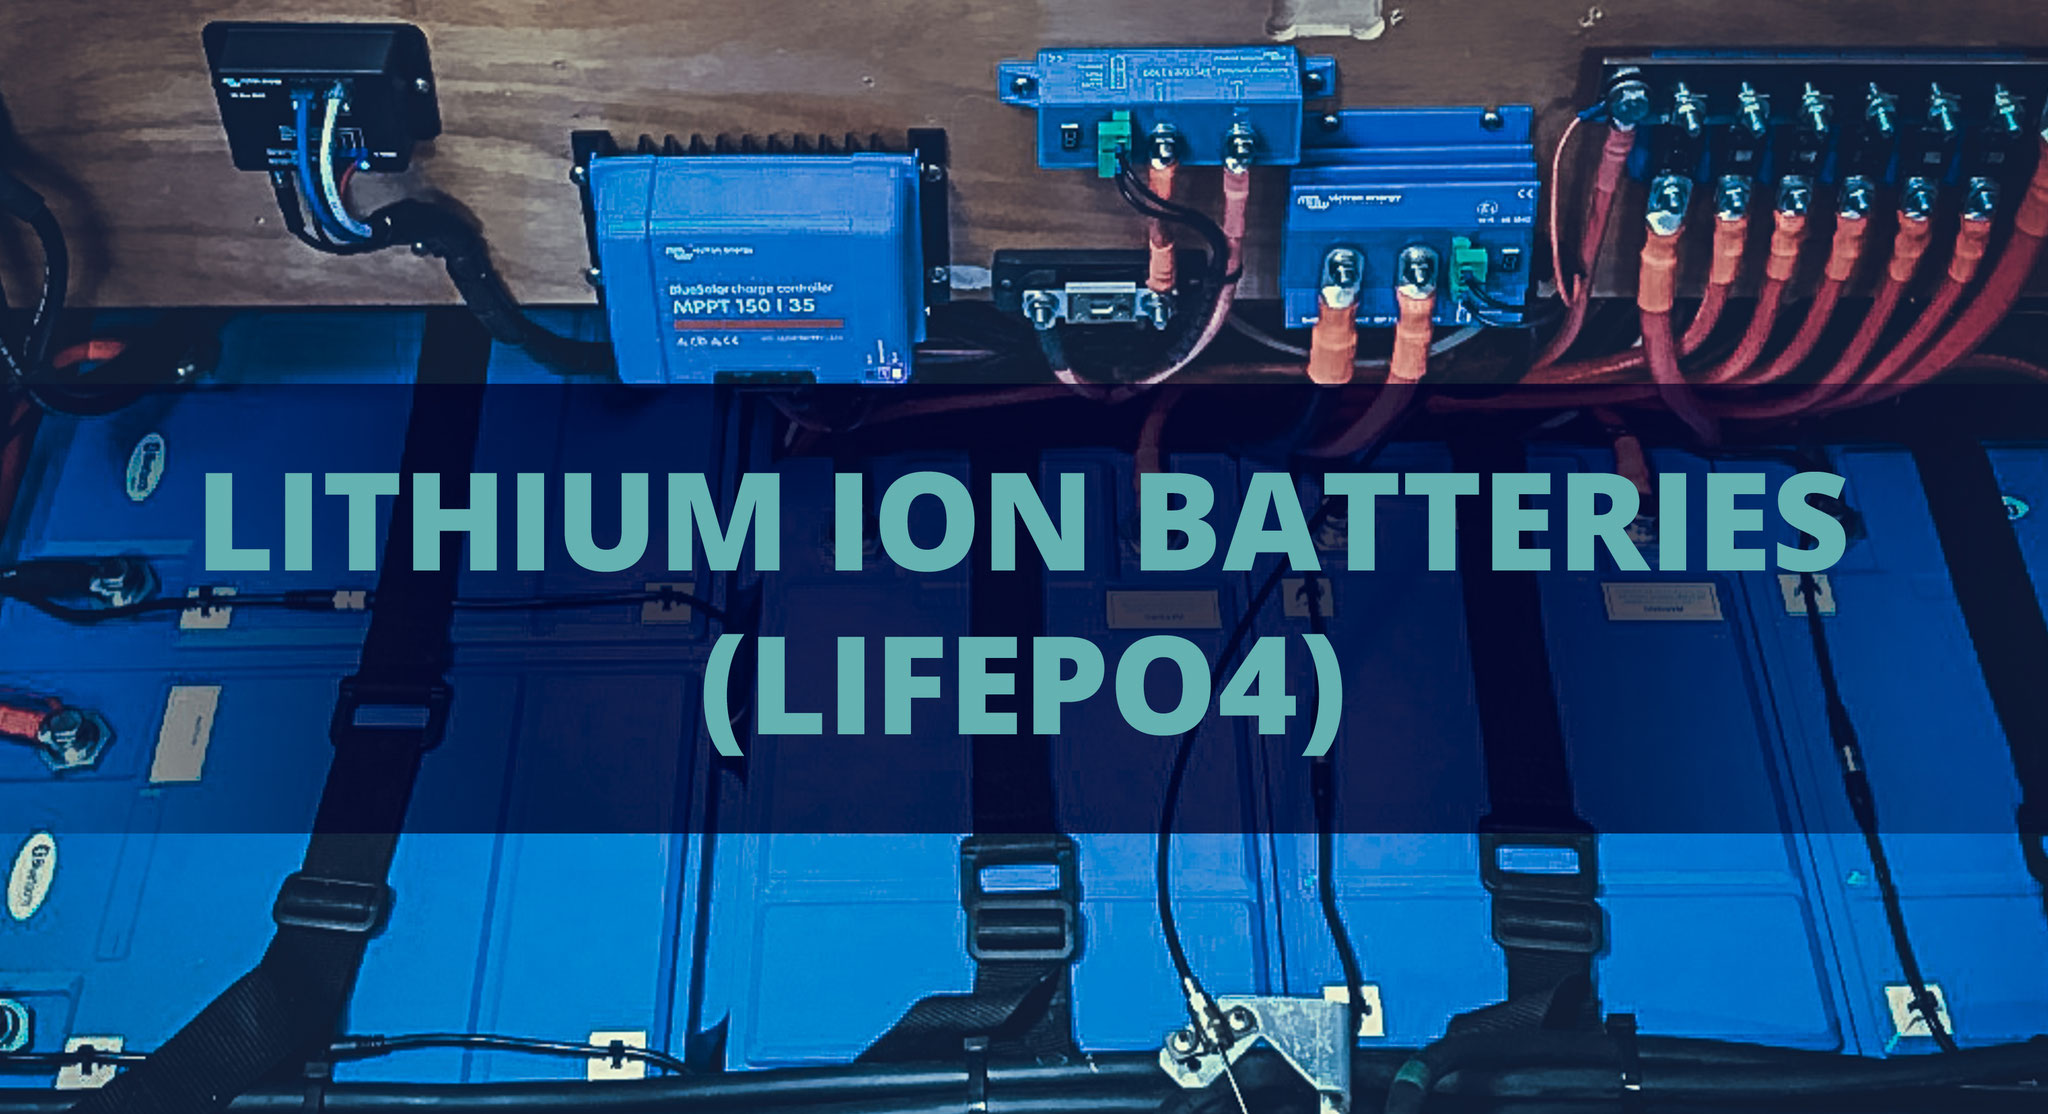 Experience the advantages of Lithium-Ion Batteries. Dependable power at sea, higher working voltages, fast and efficient charging, more usable amp hours, longer service life